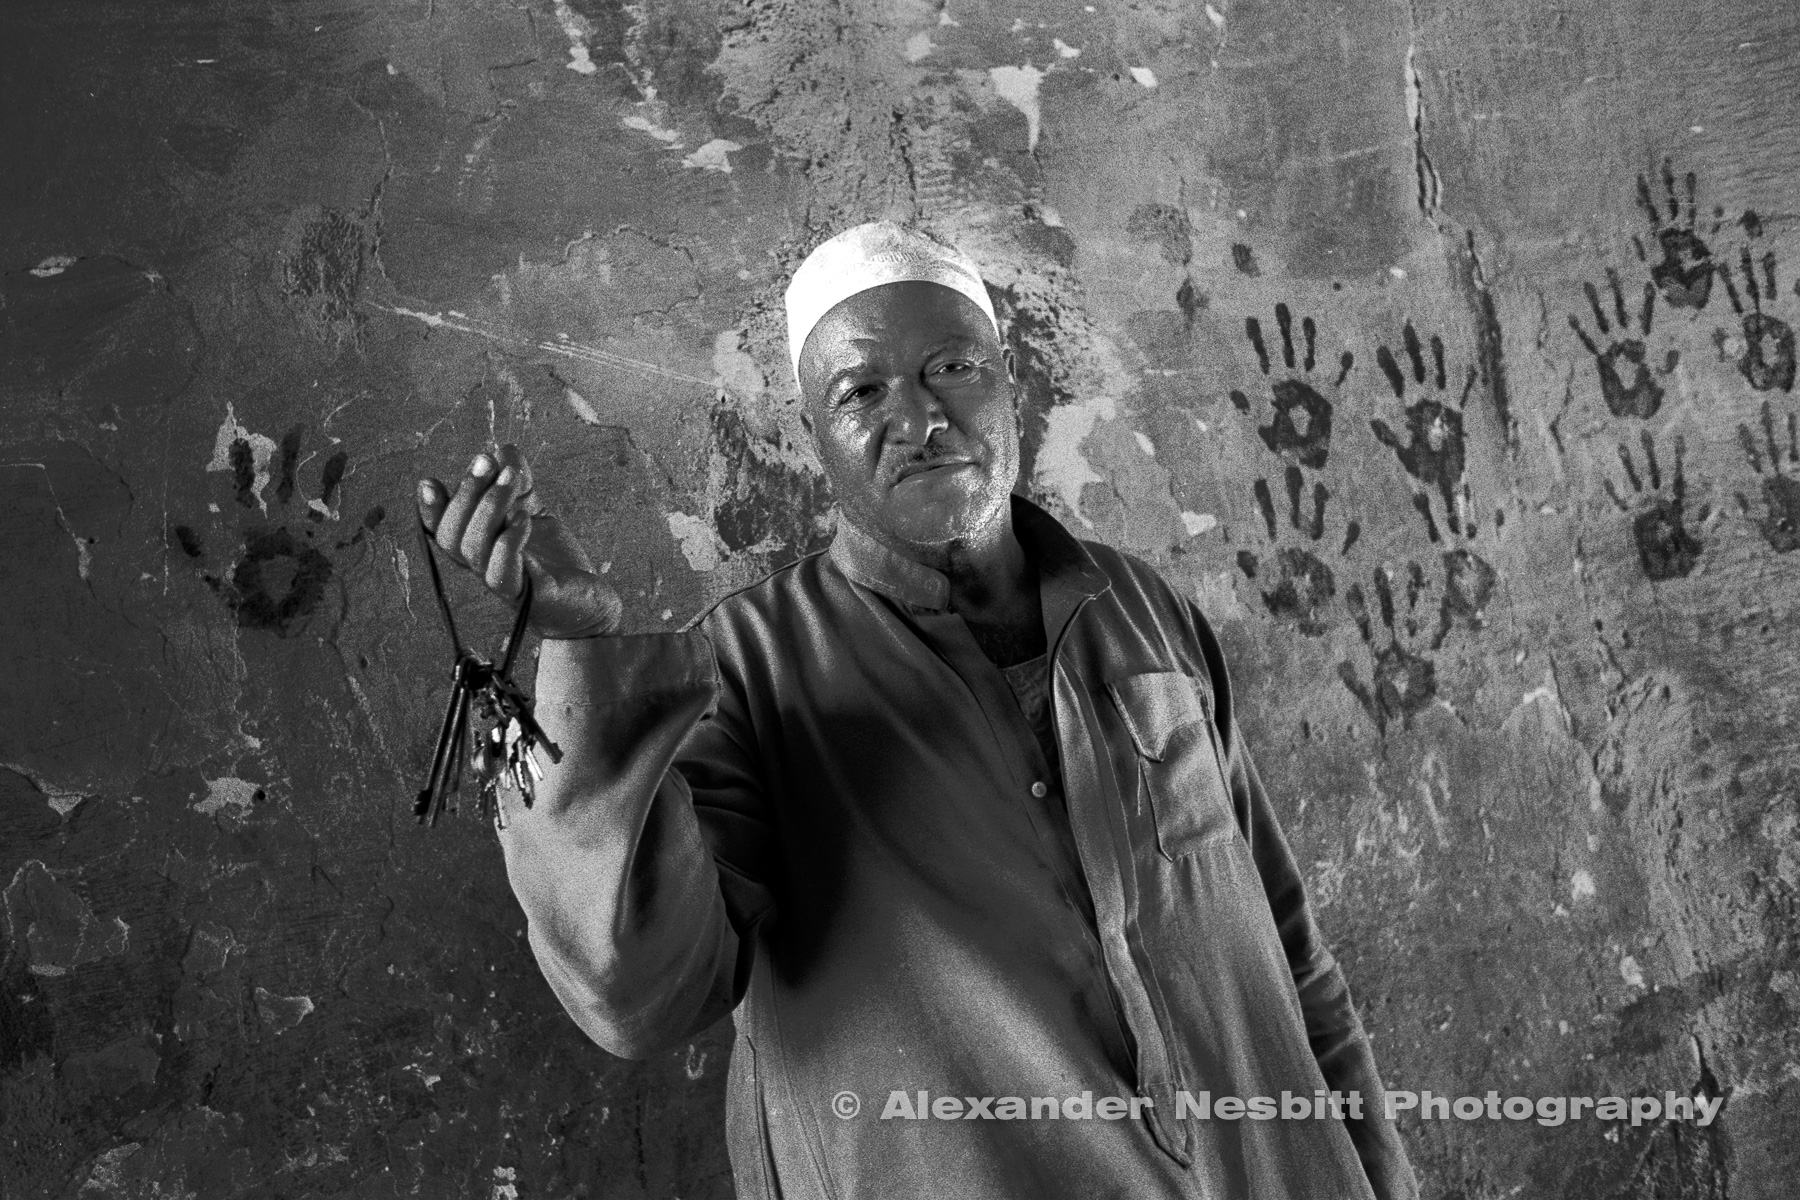 City of the Dead, Cairo - Hassan, a tomb guardian shows his ring of keys for the neighboring tombs.  Hand prints from a slaughtered sheep during the Eid el Akhtar cover the wall.